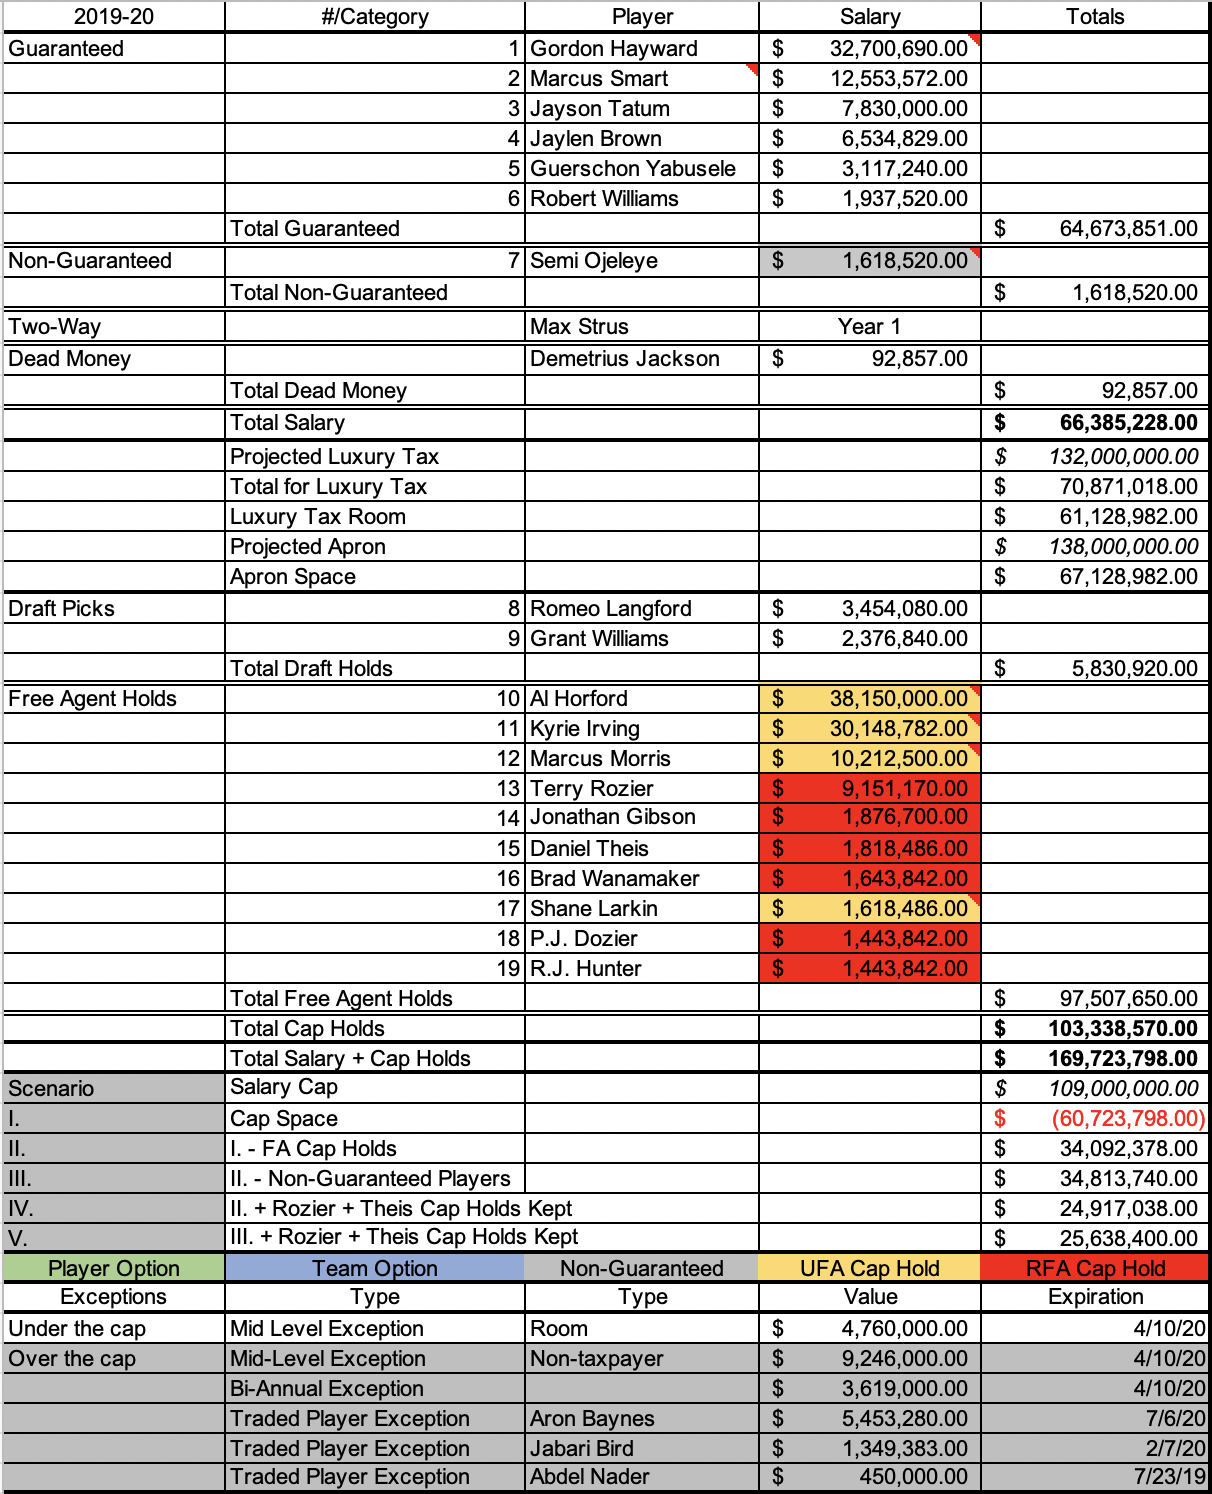 Celtics 2019-20 cap sheet with Romeo Langford and Grant Williams selections and the free agent cap holds of Al Horford and Kyrie Irving, and Aron Baynes and the 20th overall selection no longer on the team.